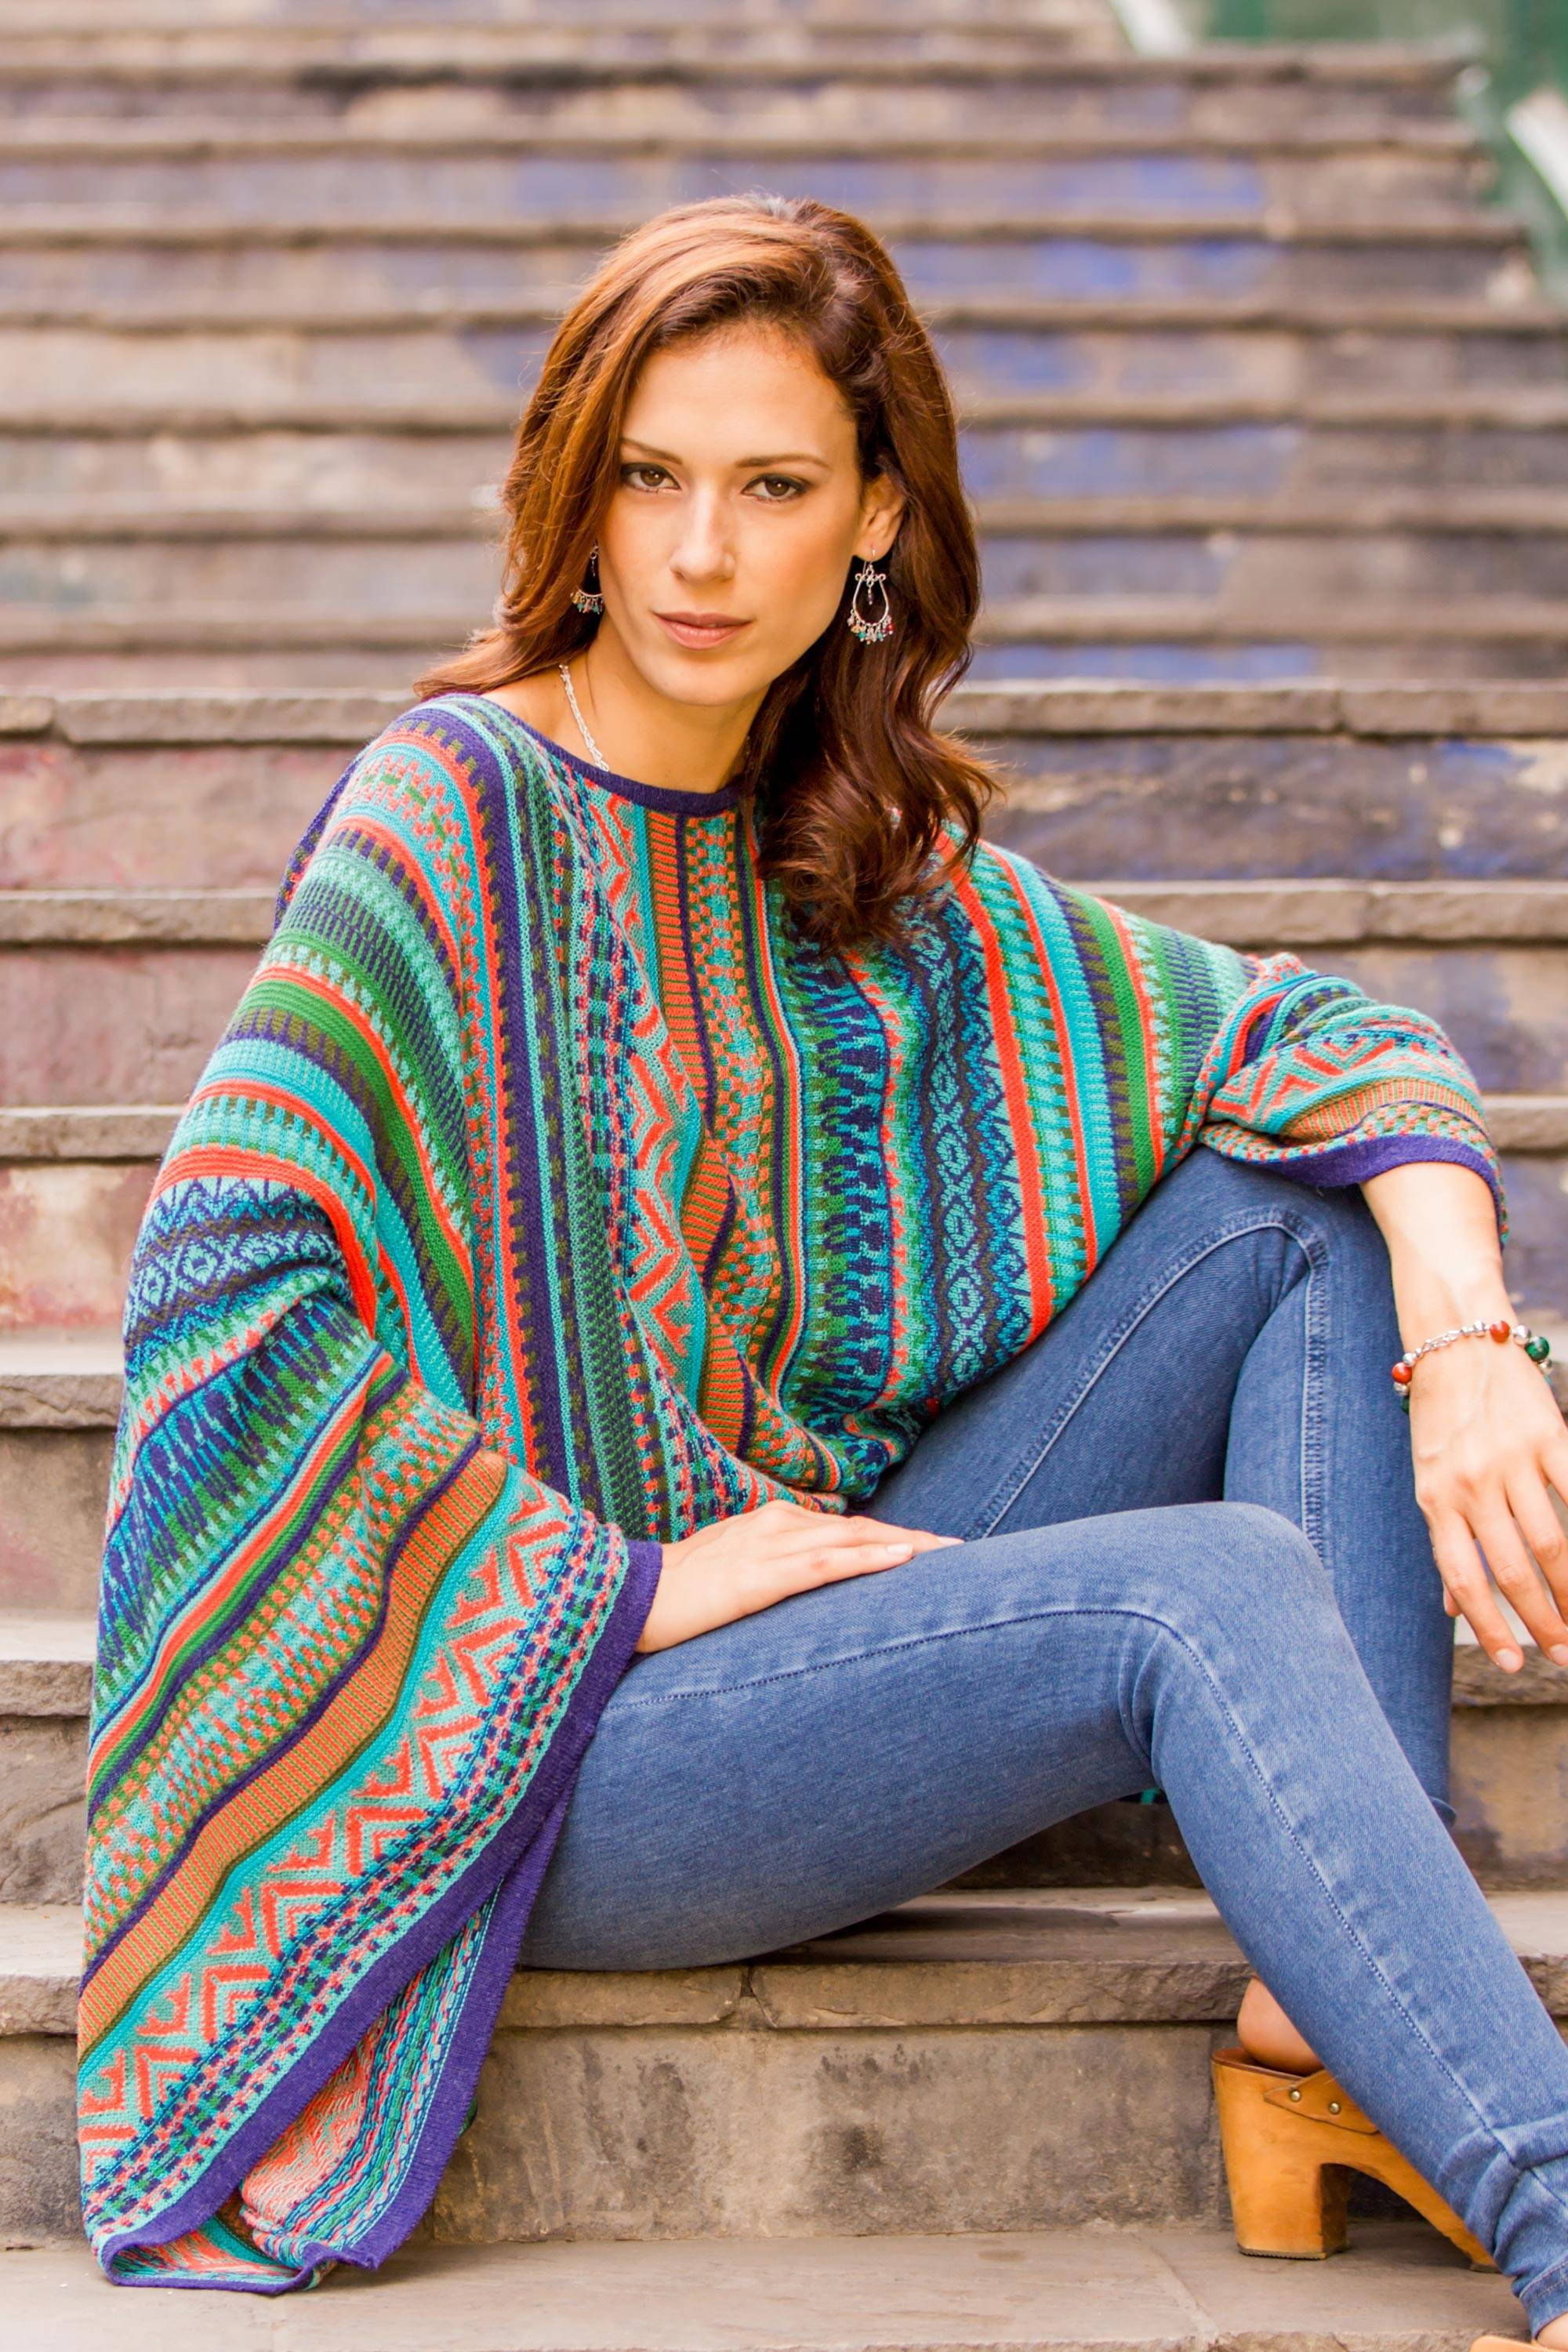 Lima Dance Bohemian Knit Sweater from Peru in Turquoise Stripes Perfect Fall Sweaters